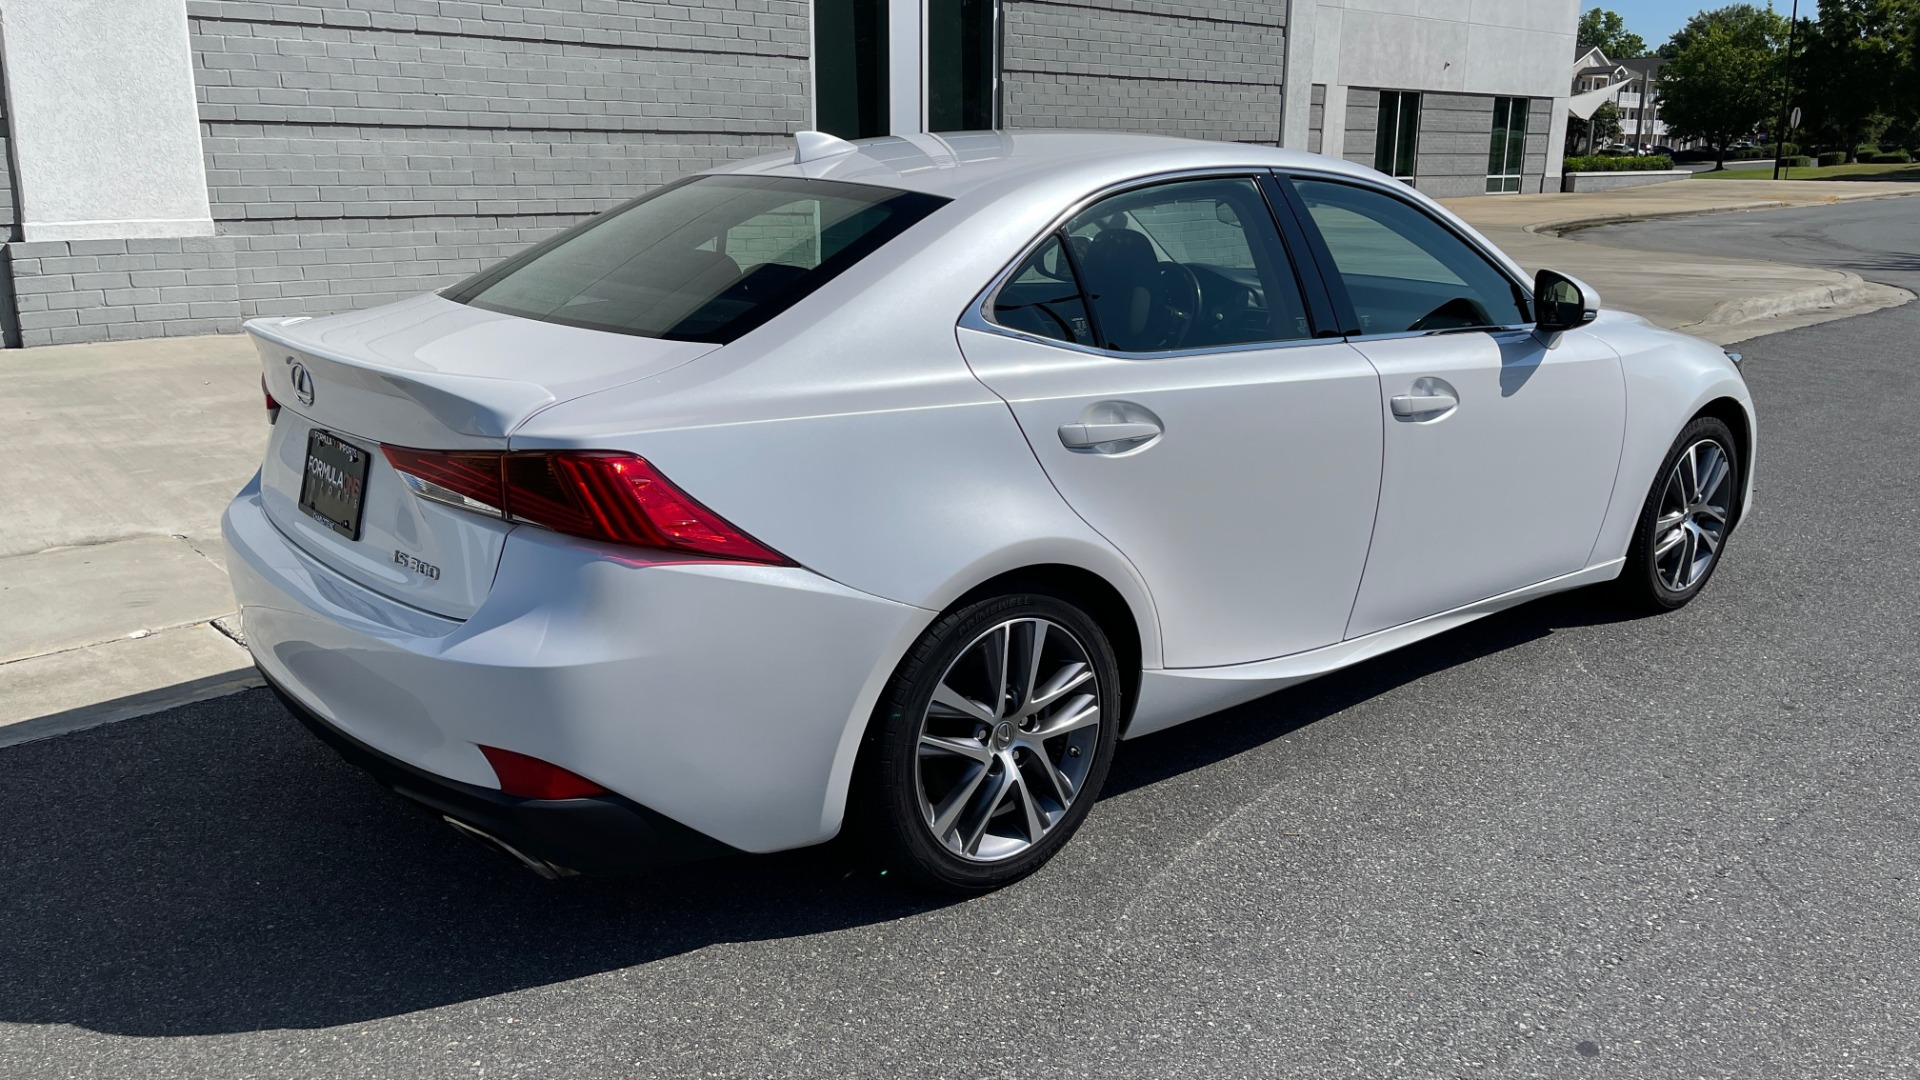 Used 2018 Lexus IS 300 / 2.0L TURBO / 8-SPD AUTO / SUNROOF / REARVIEW for sale $29,495 at Formula Imports in Charlotte NC 28227 2